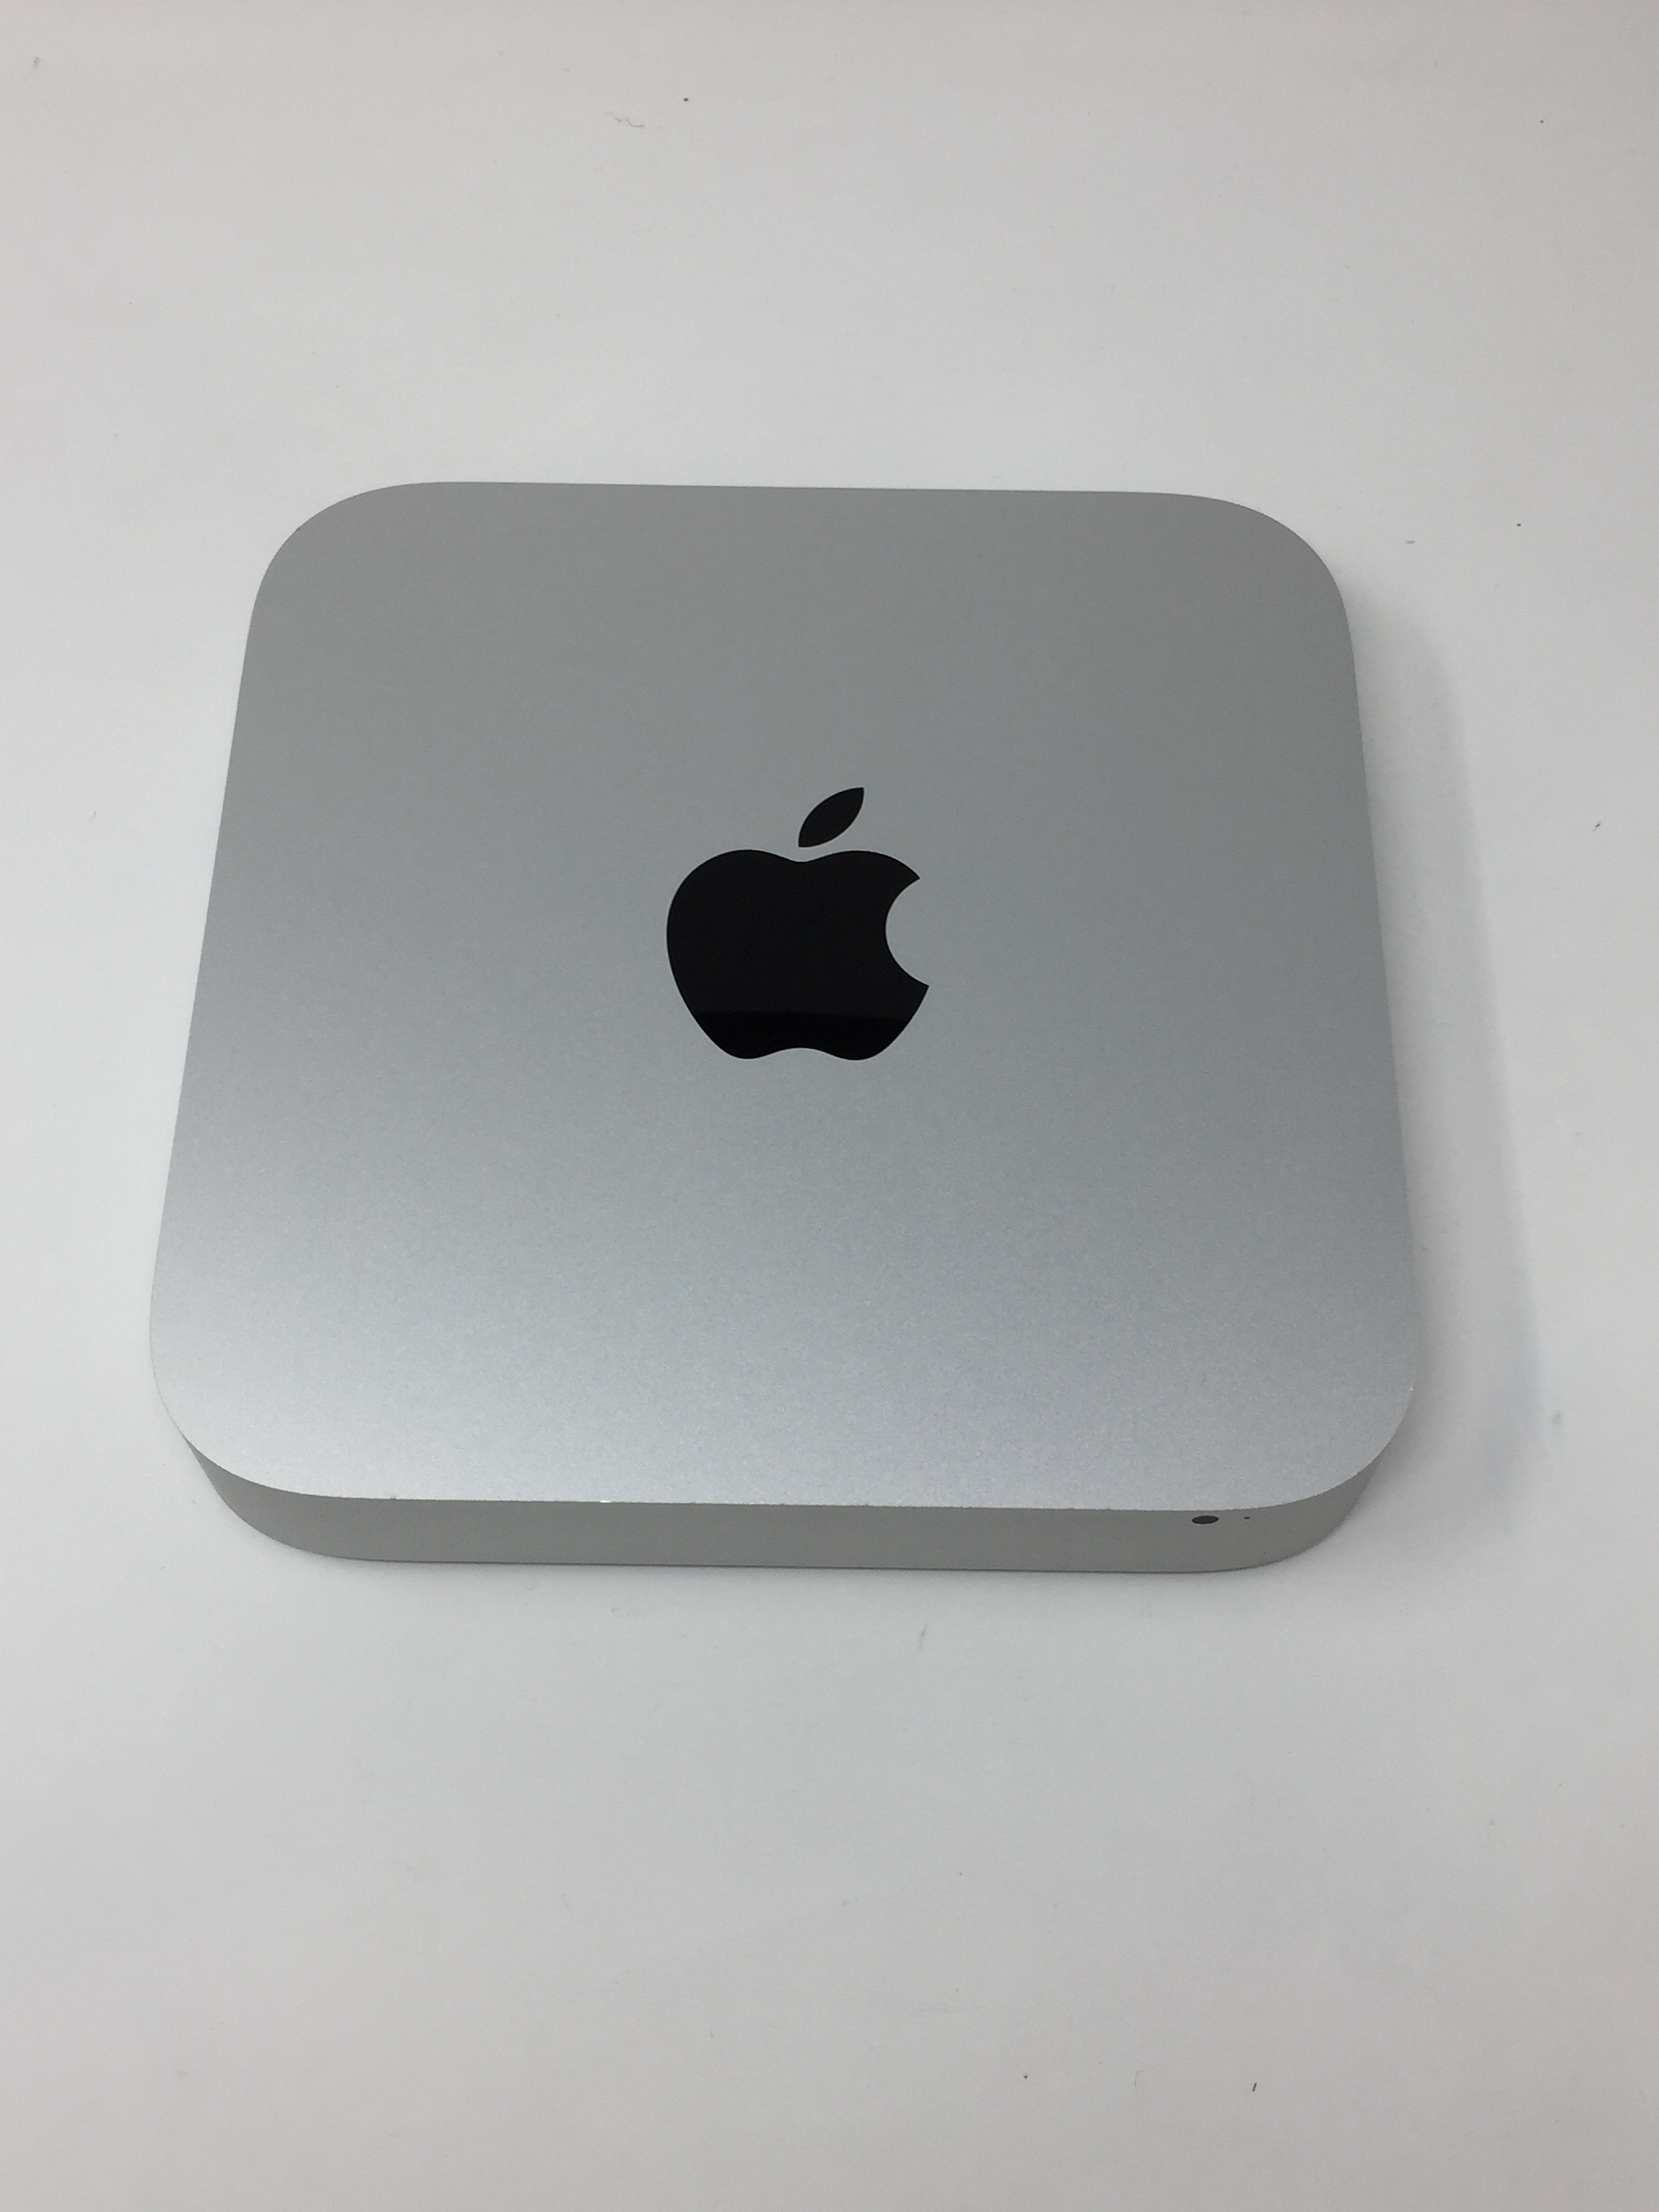 Mac Mini Late 2014 (Intel Core i5 2.8 GHz 8 GB RAM 512 GB SSD), 2.6GHZ INTEL CORE I5, 8 GB 1600 MHz DDR3, SSD 525GB, imagen 1